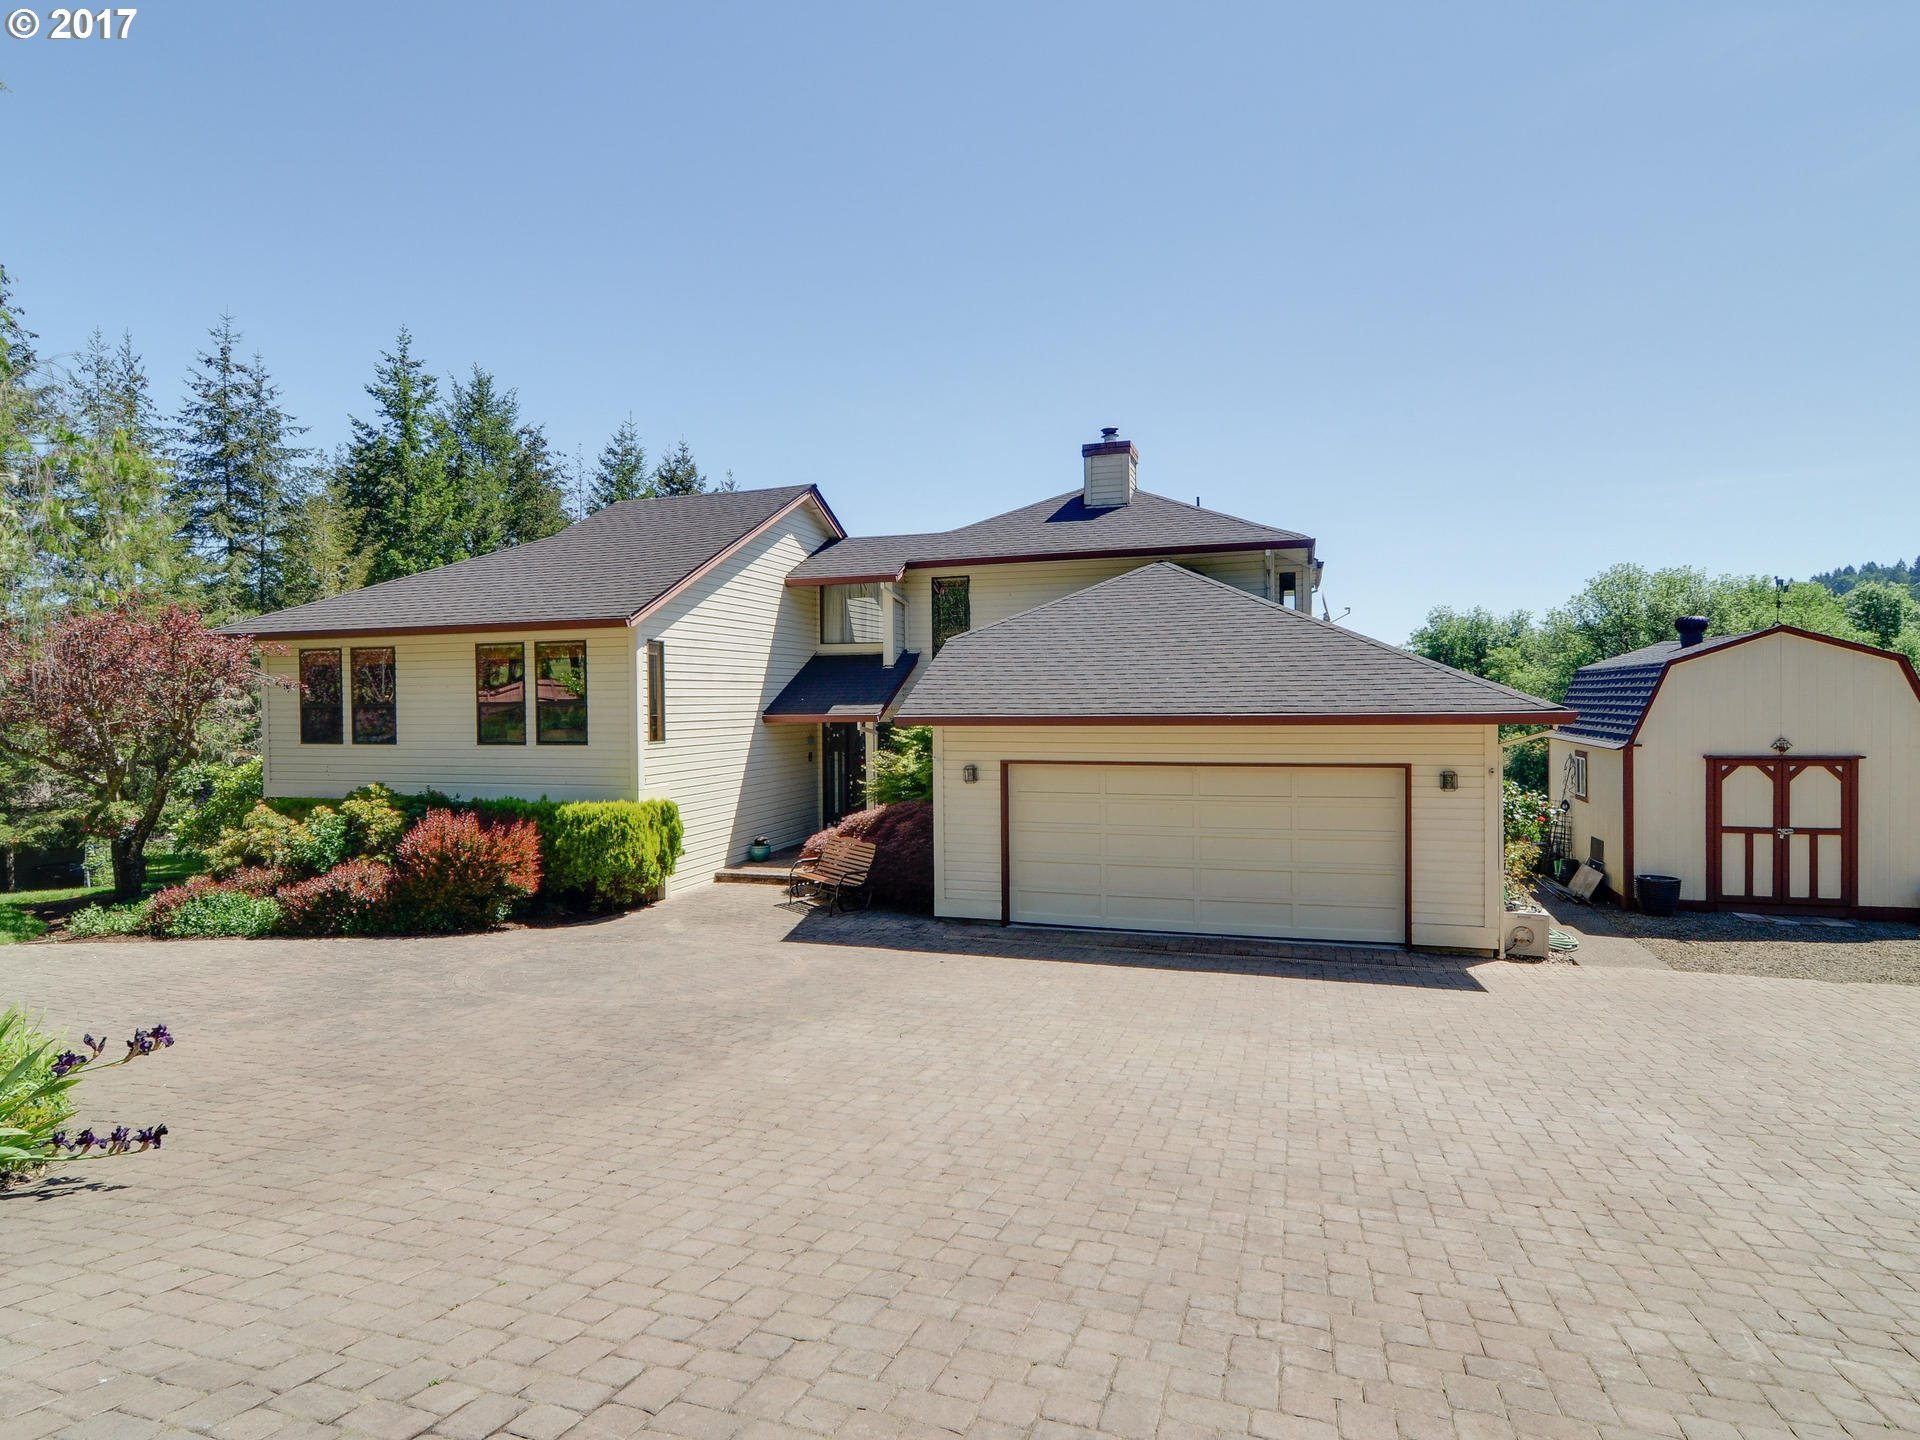 14820 SW HIDDEN HILLS RD, McMinnville, OR 97128